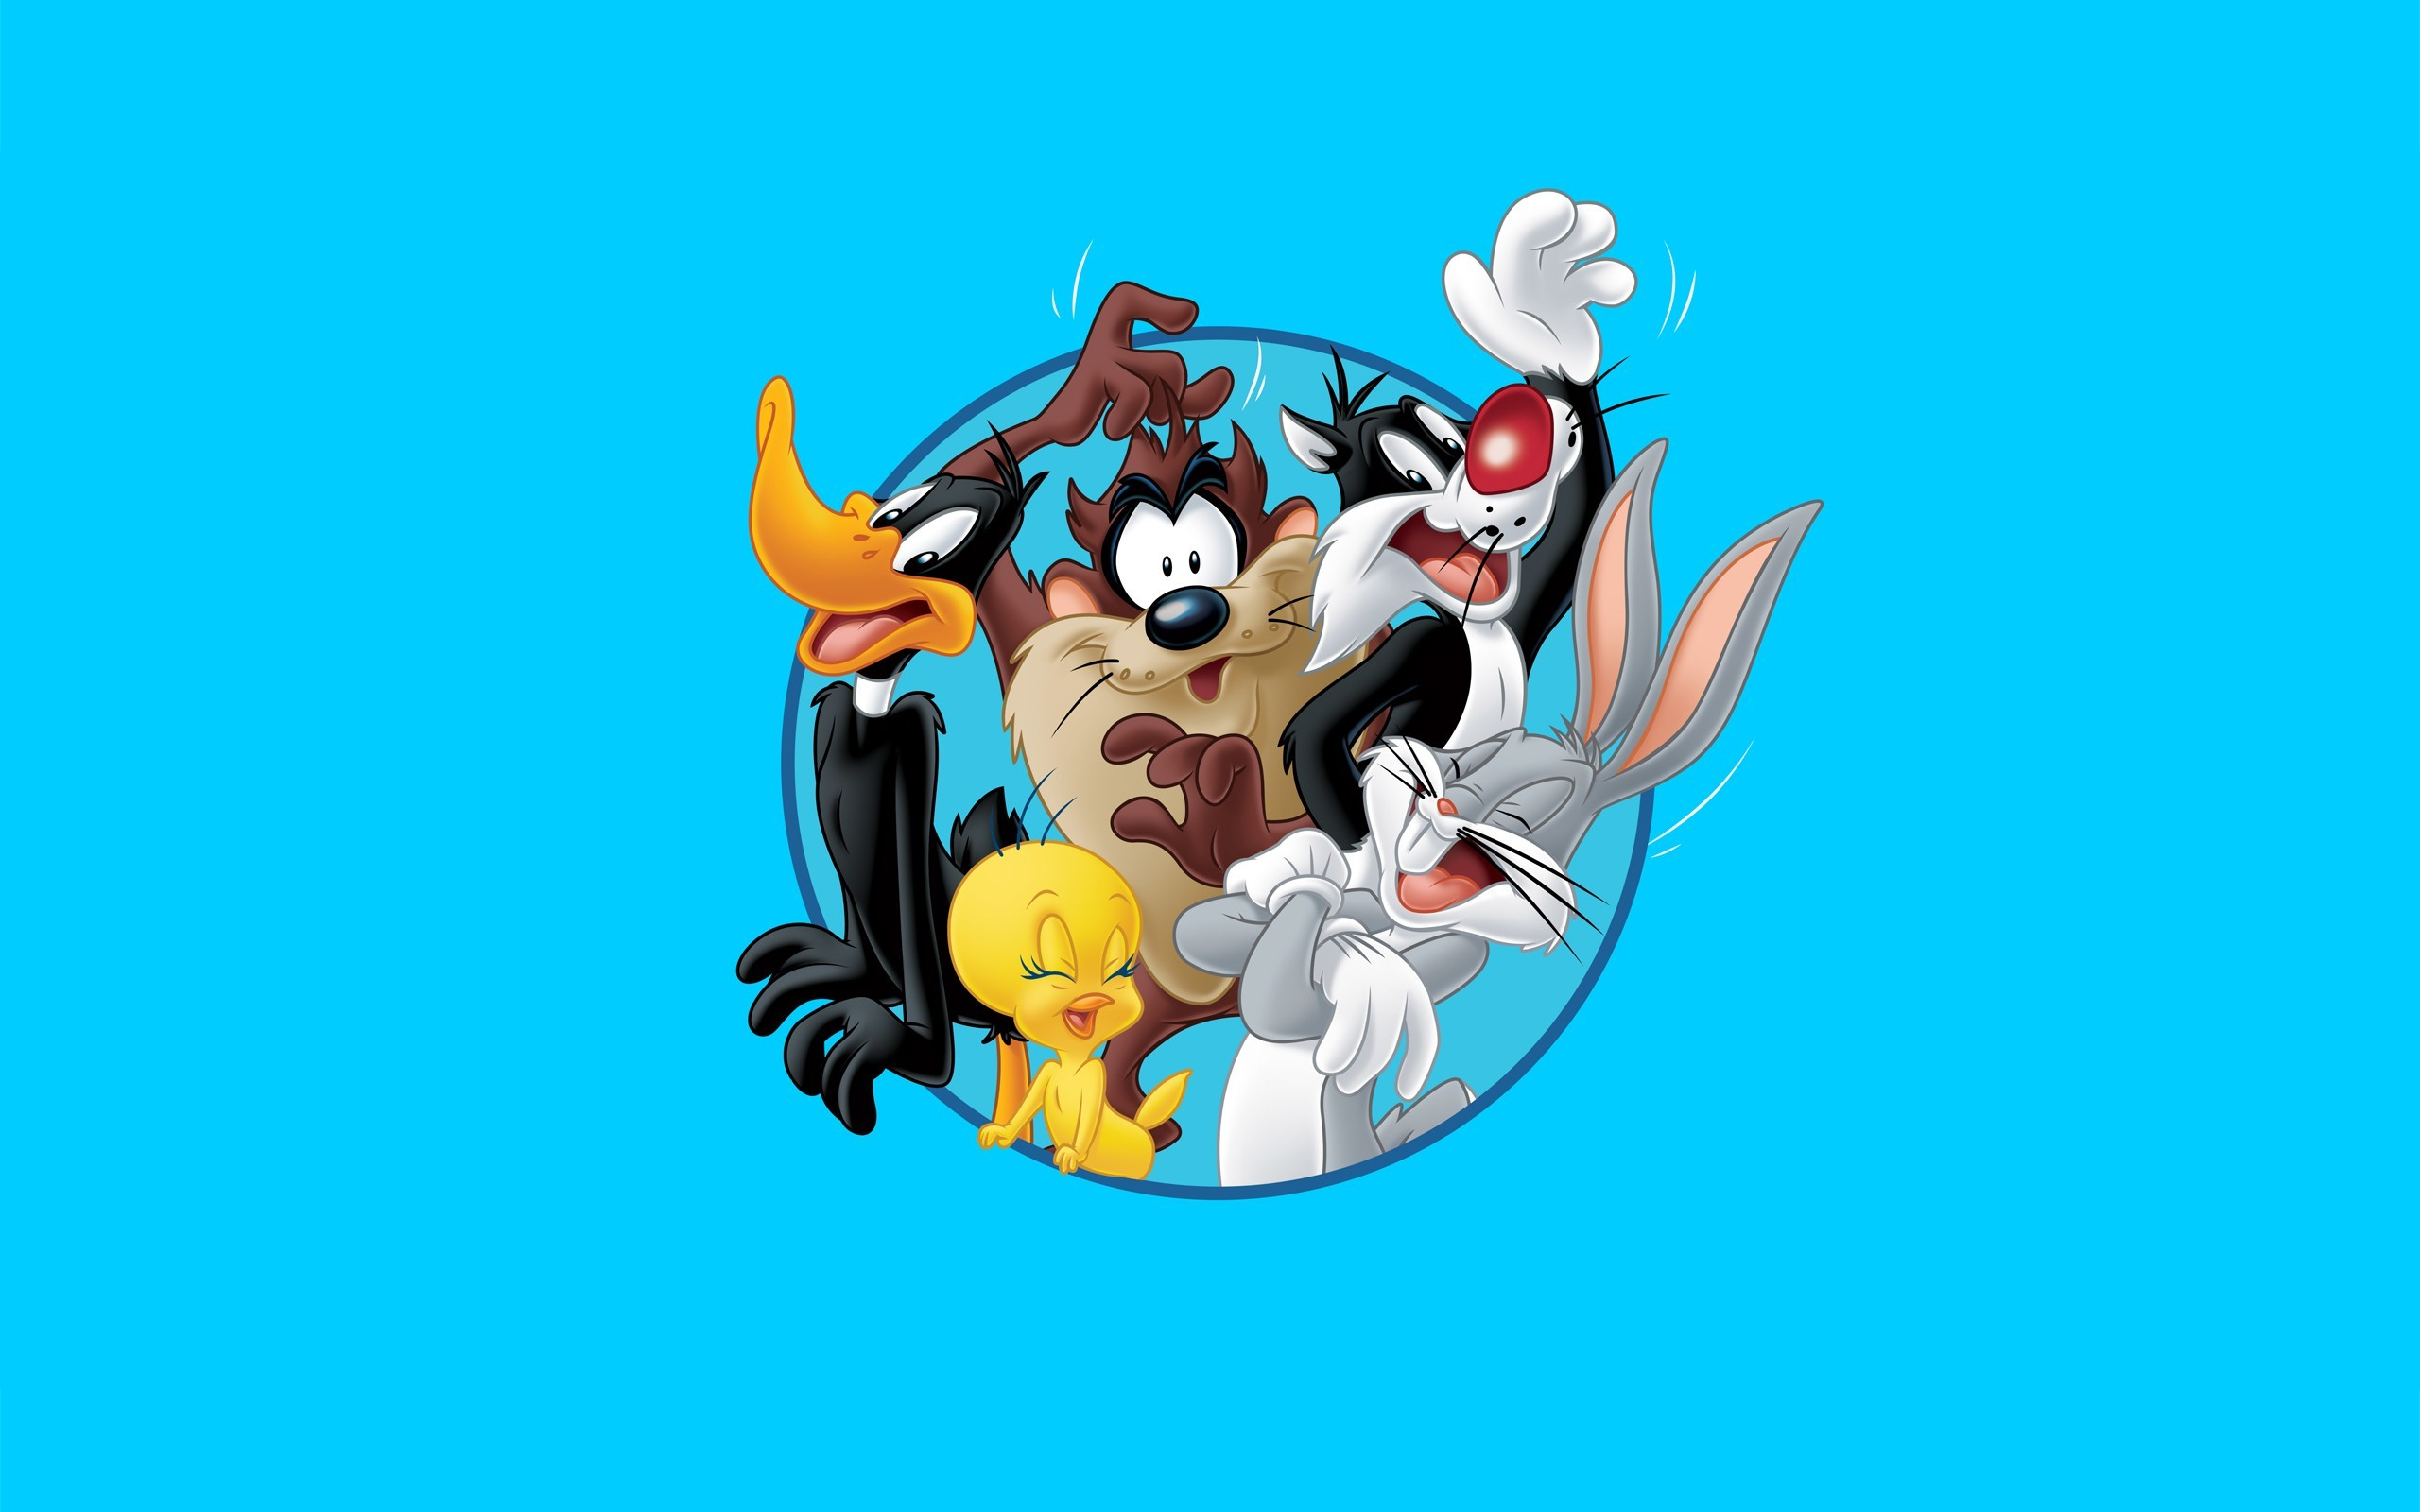 2560x1600 Ewallpaper Hub brings Looney Tunes wallpaper in high resolution for you. We  collect premium quality Looney Tunes wallpapers HD from all over the  internet ...